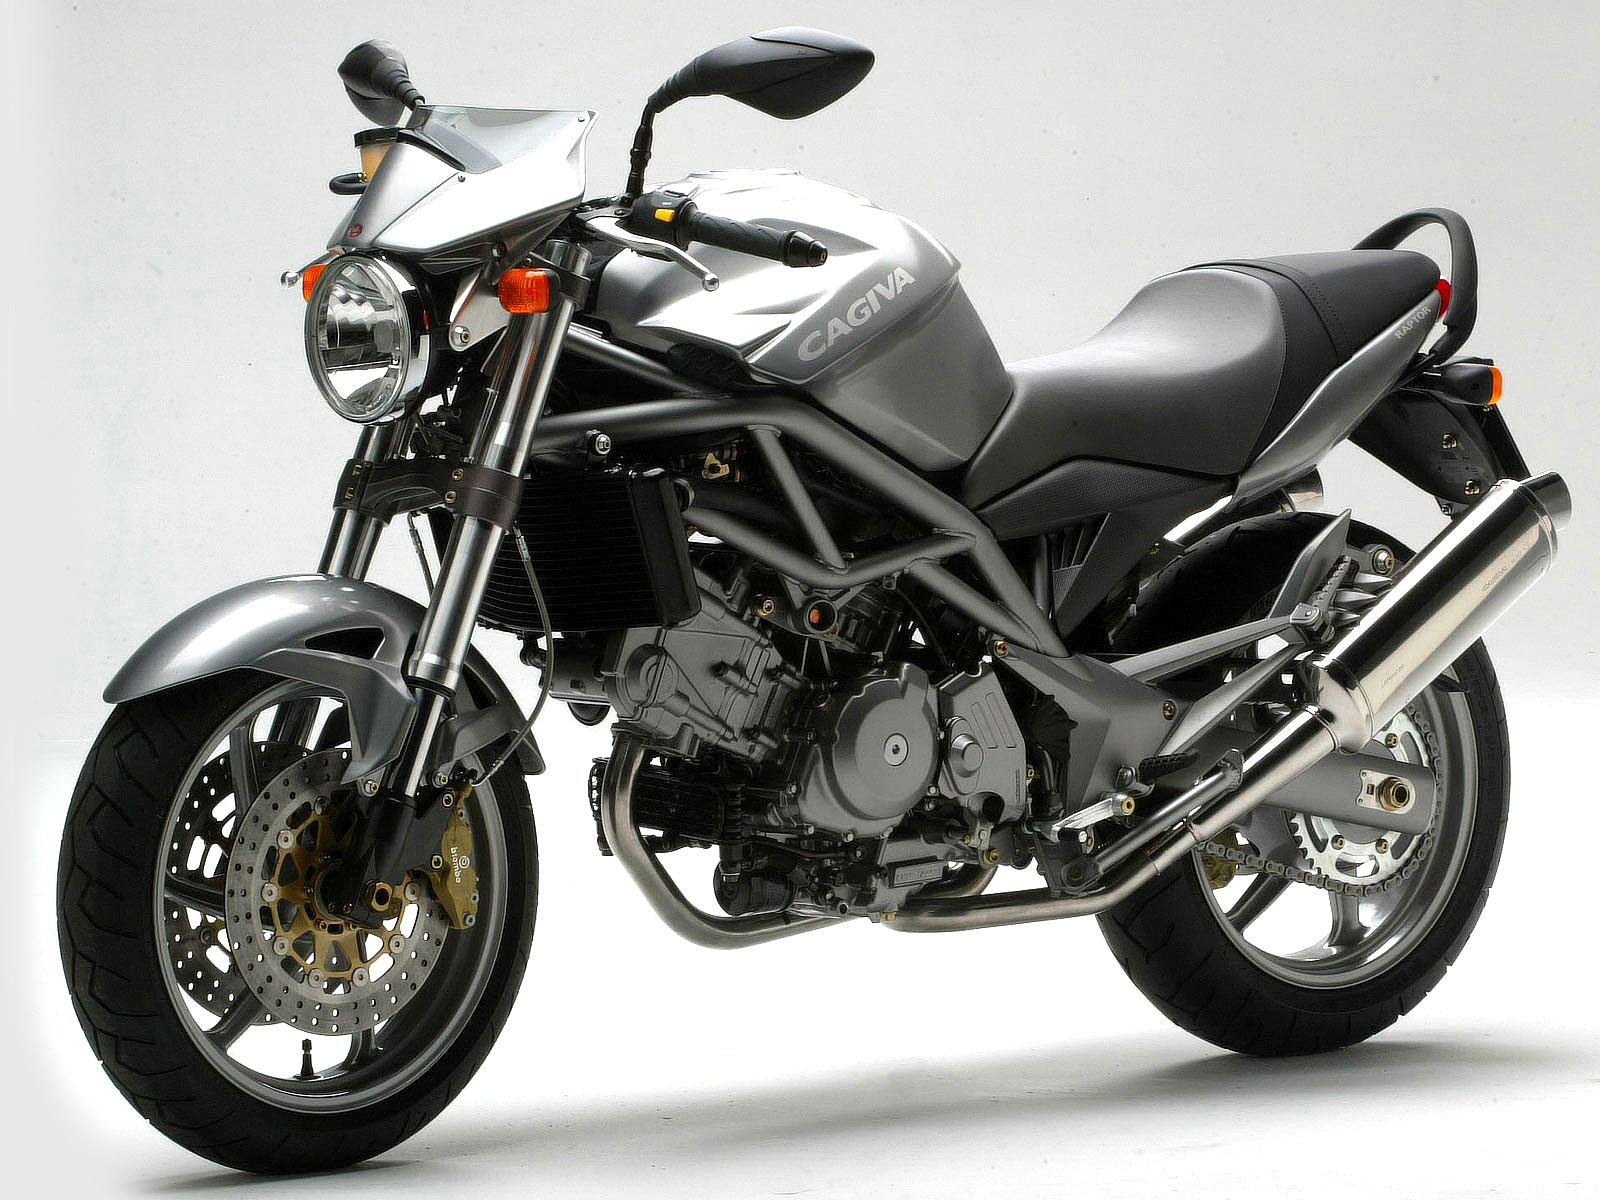 CAGIVA Raptor 650 Specification